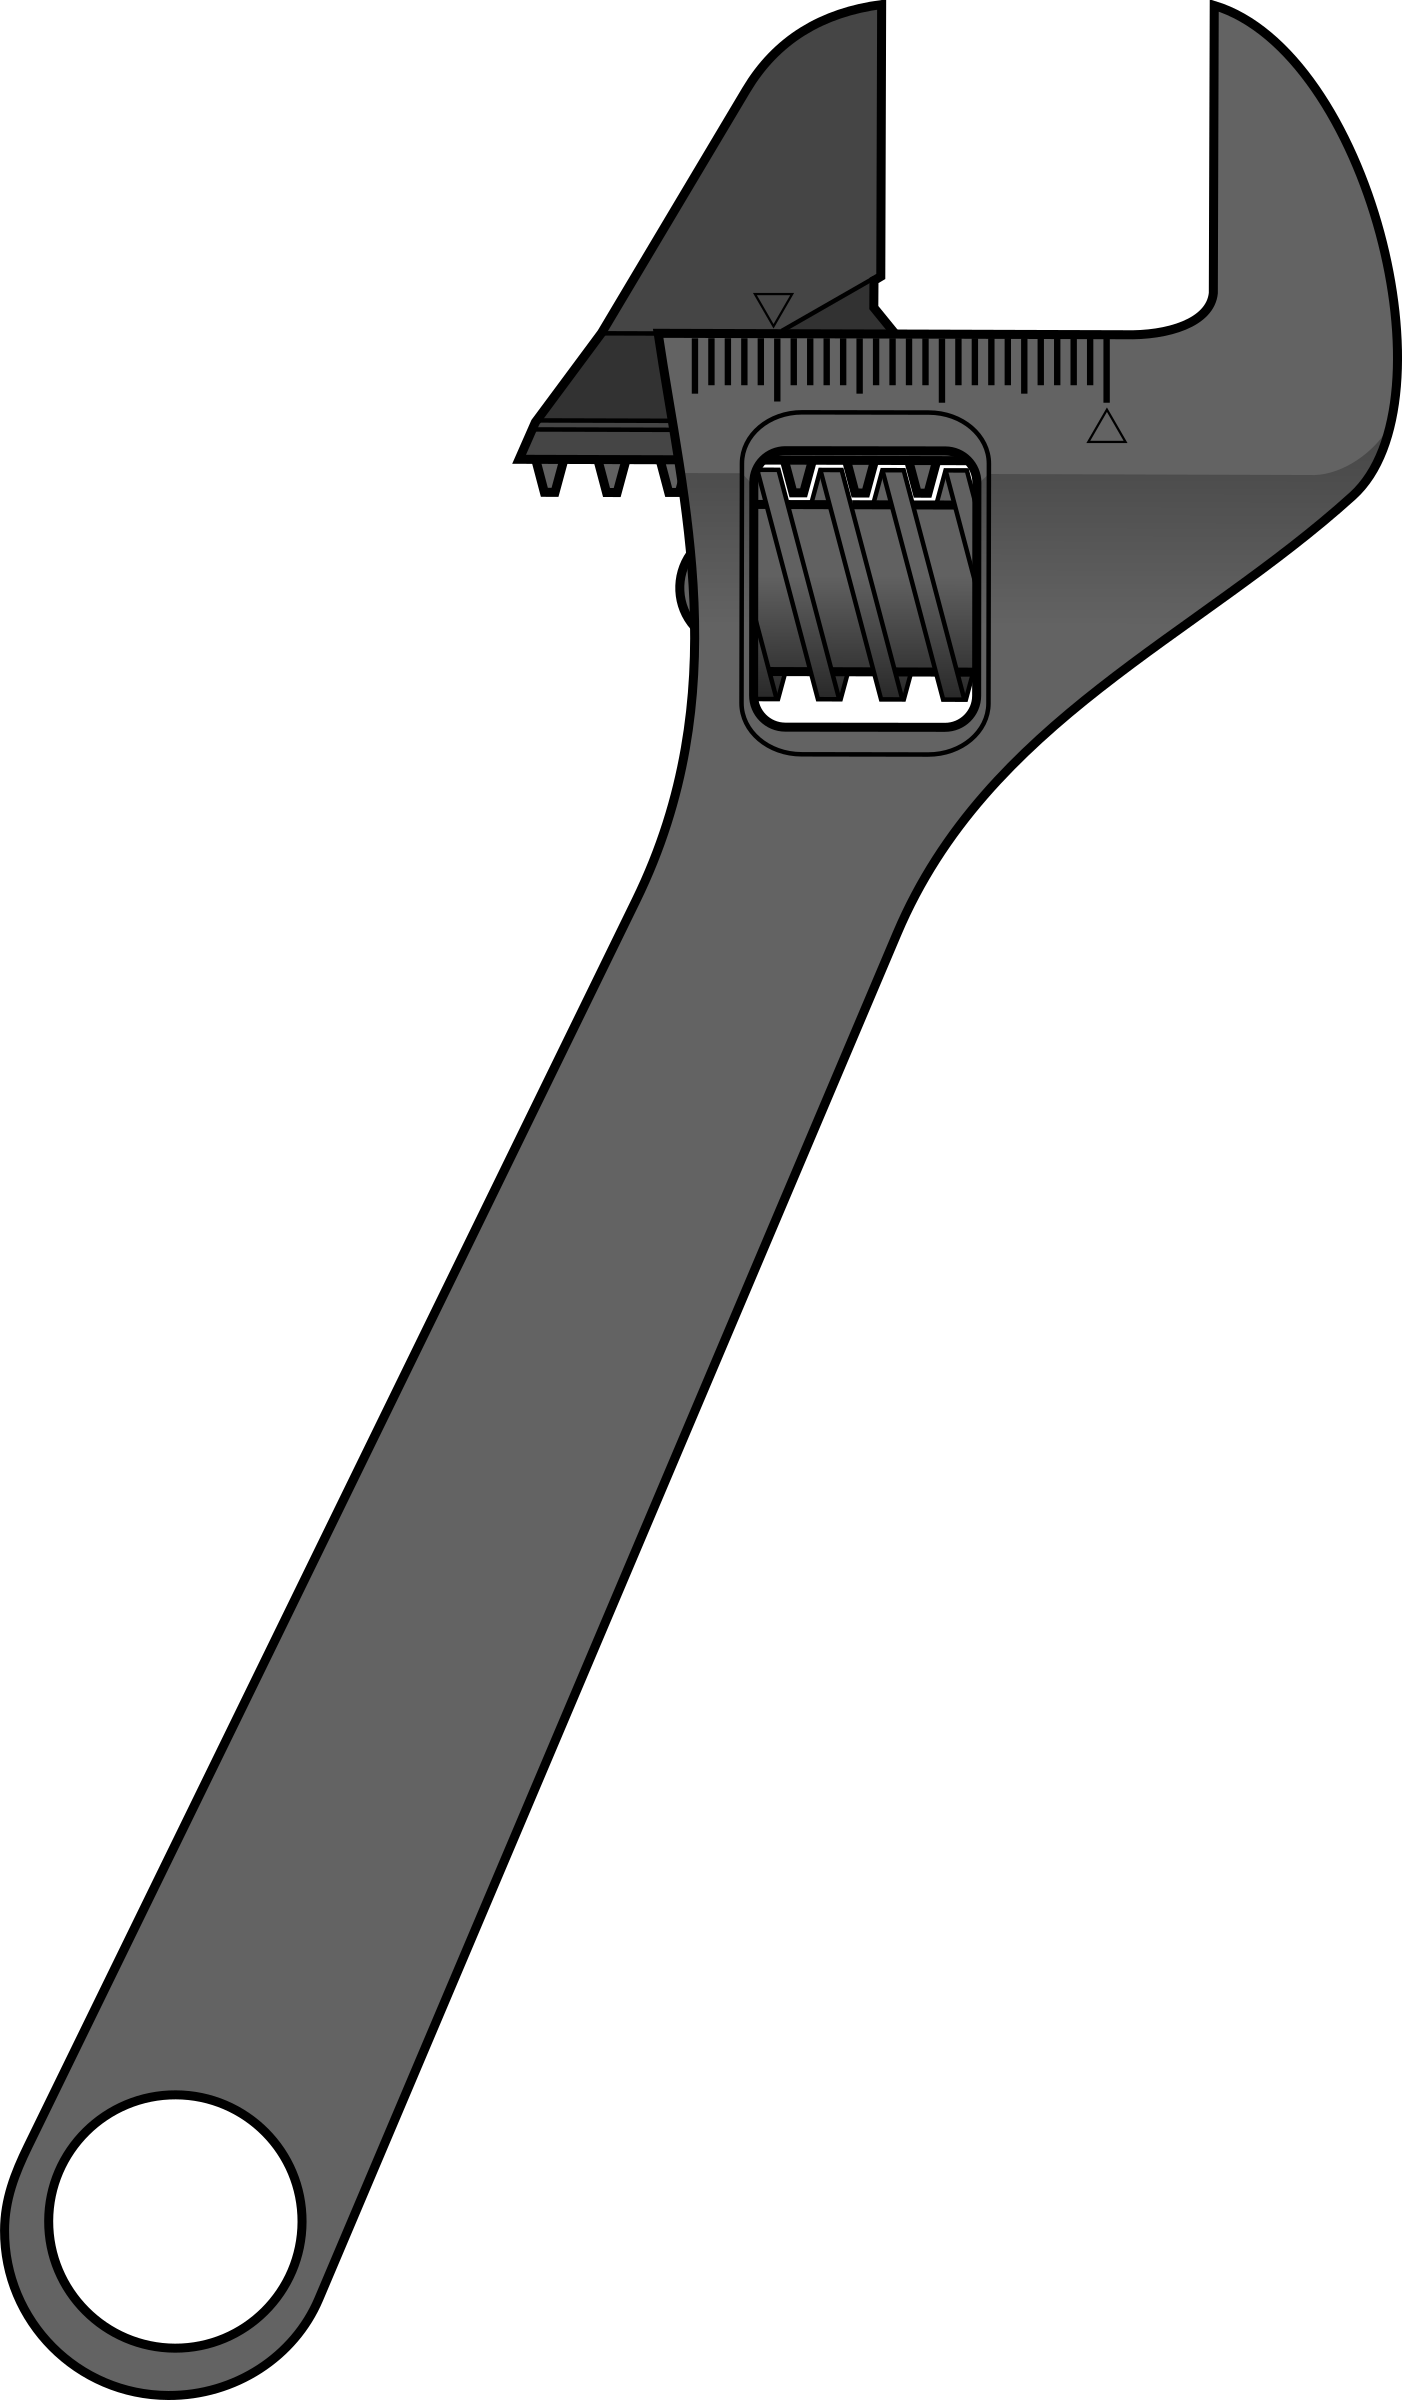 Clipart hand wrench. Adjustable big image png